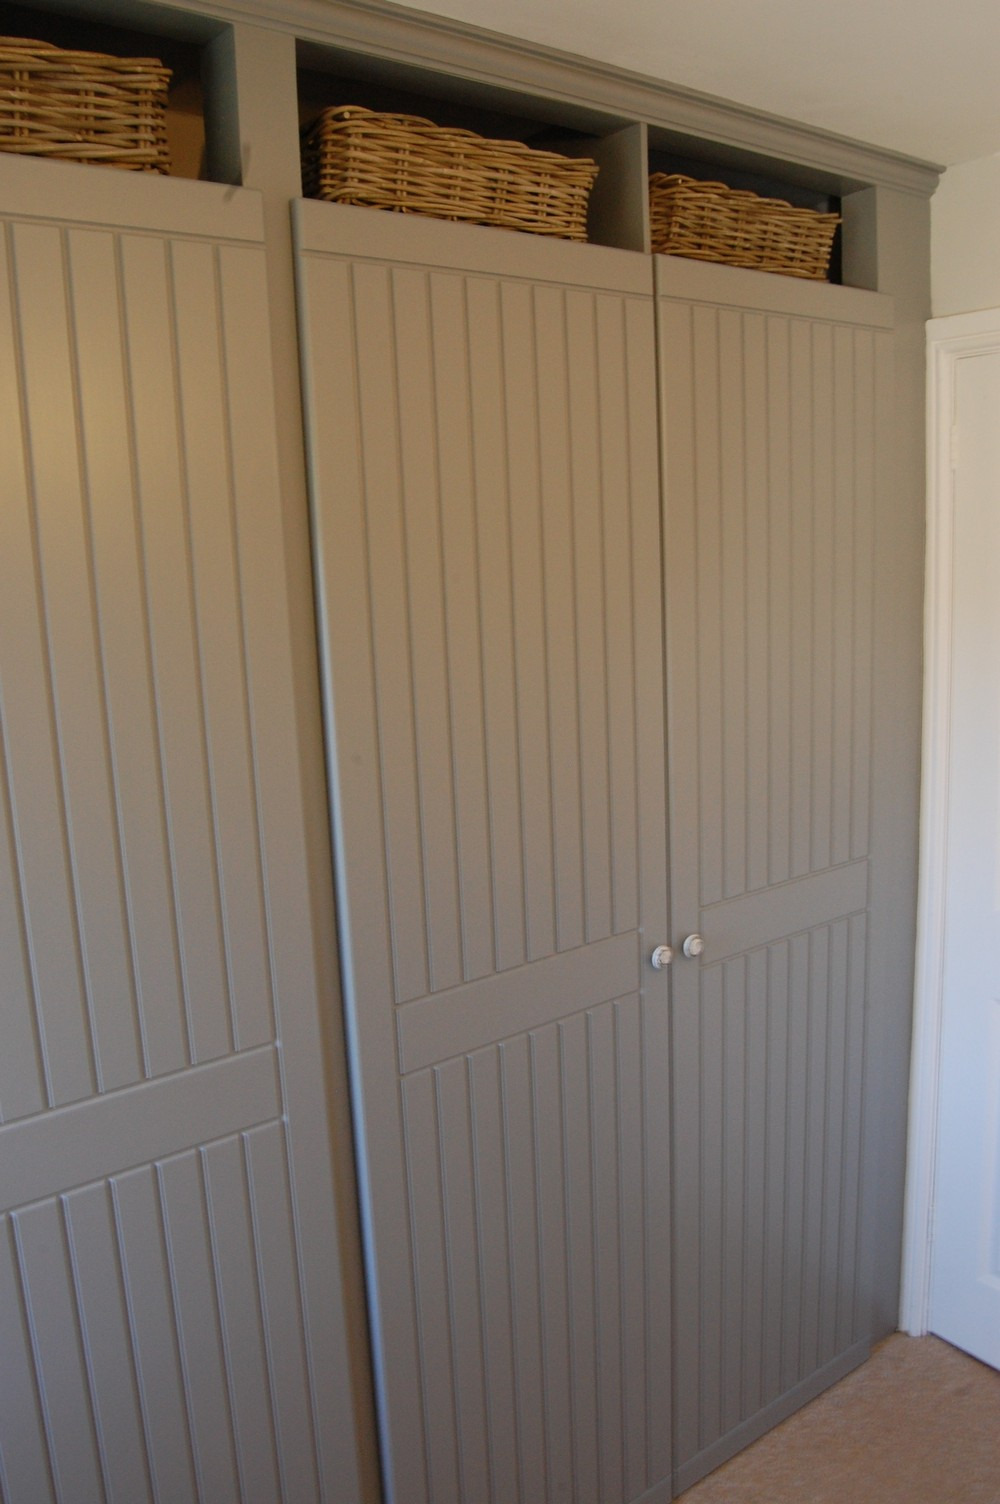 bespoke fitted wardrobe doors style clover cottage 40 60 split door 2